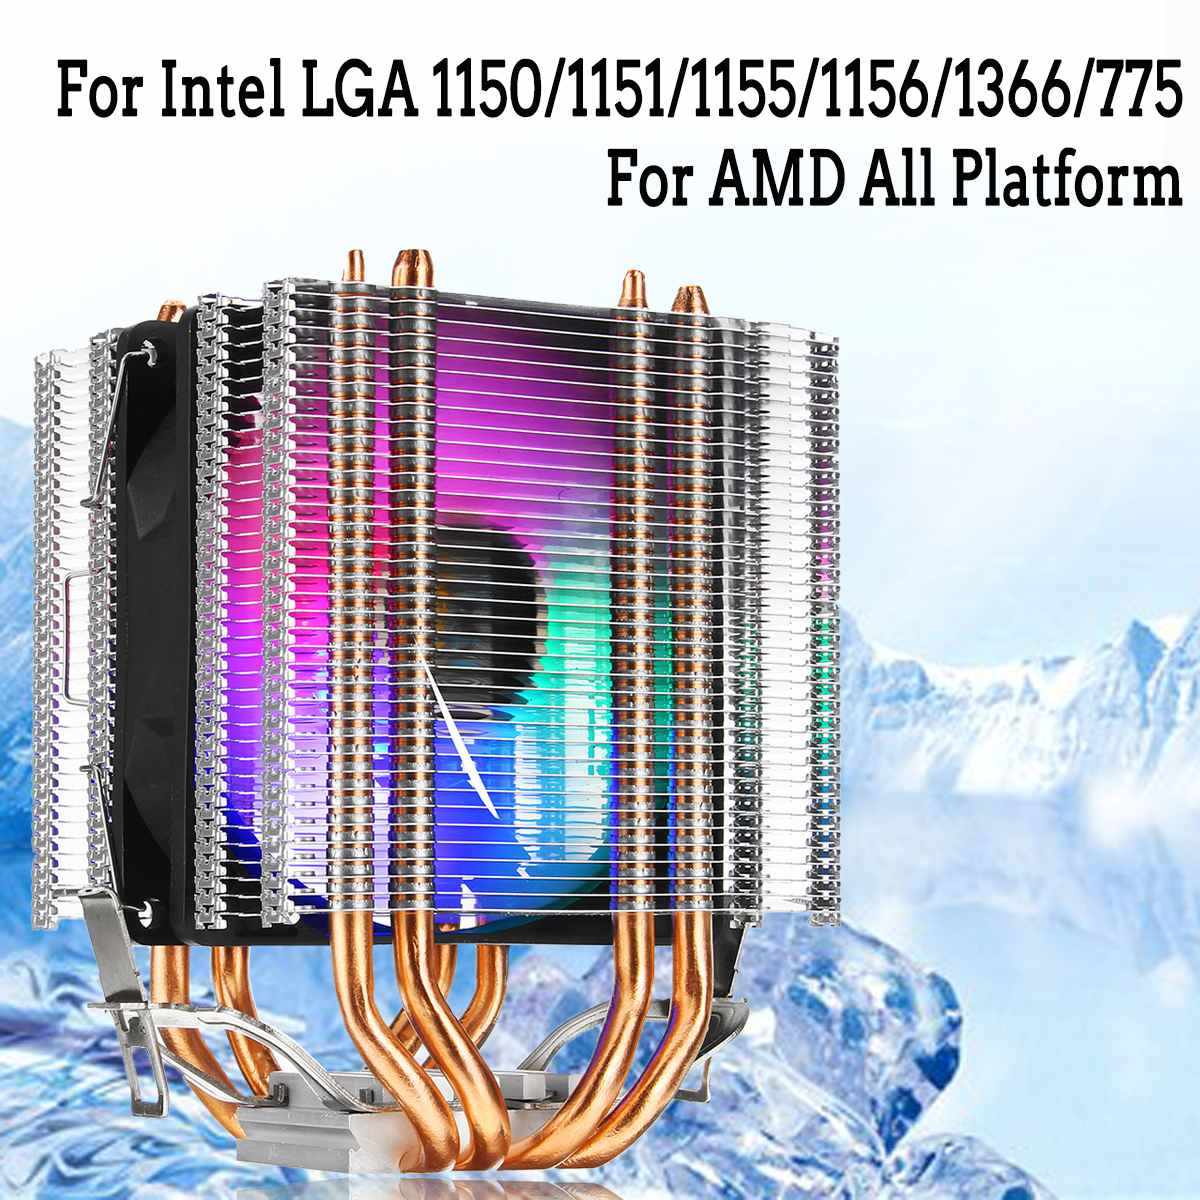 for Intel LAG 1155 1156 775 for AMD Socket AM3/AM2 RGB LED CPU Cooler Fan 4  Heatpipe Dual Tower 12V